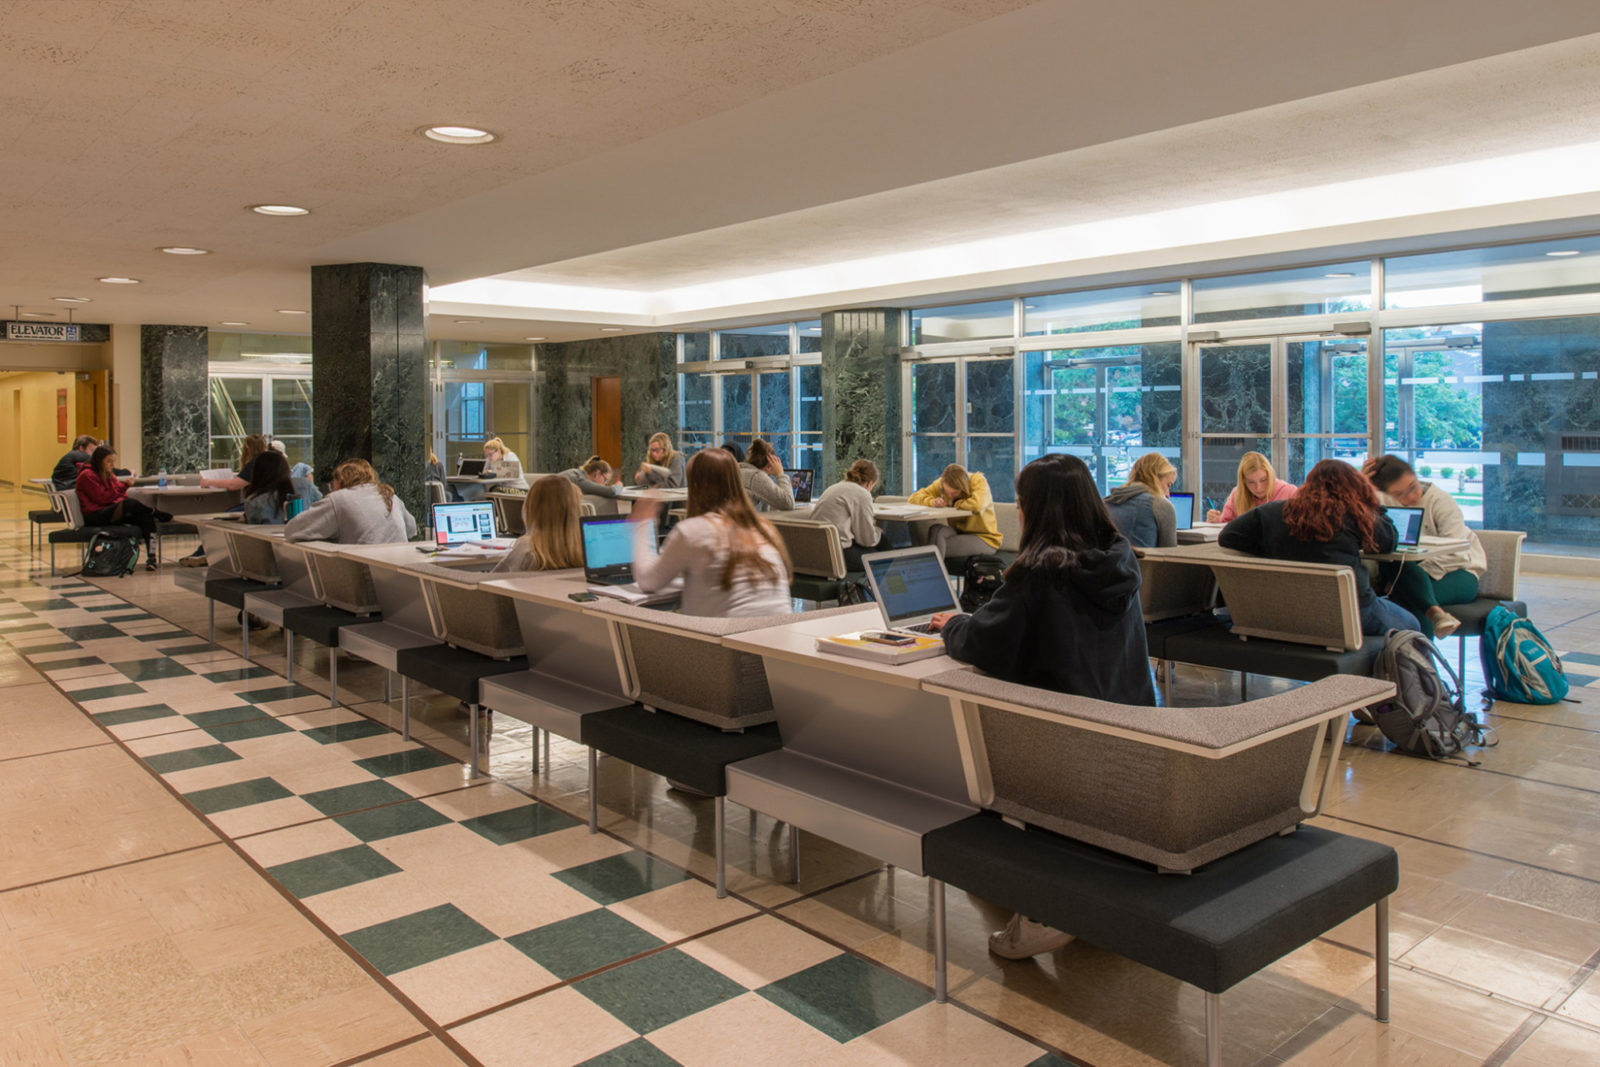 PULilly Project Highlight: back view of students studying at tables